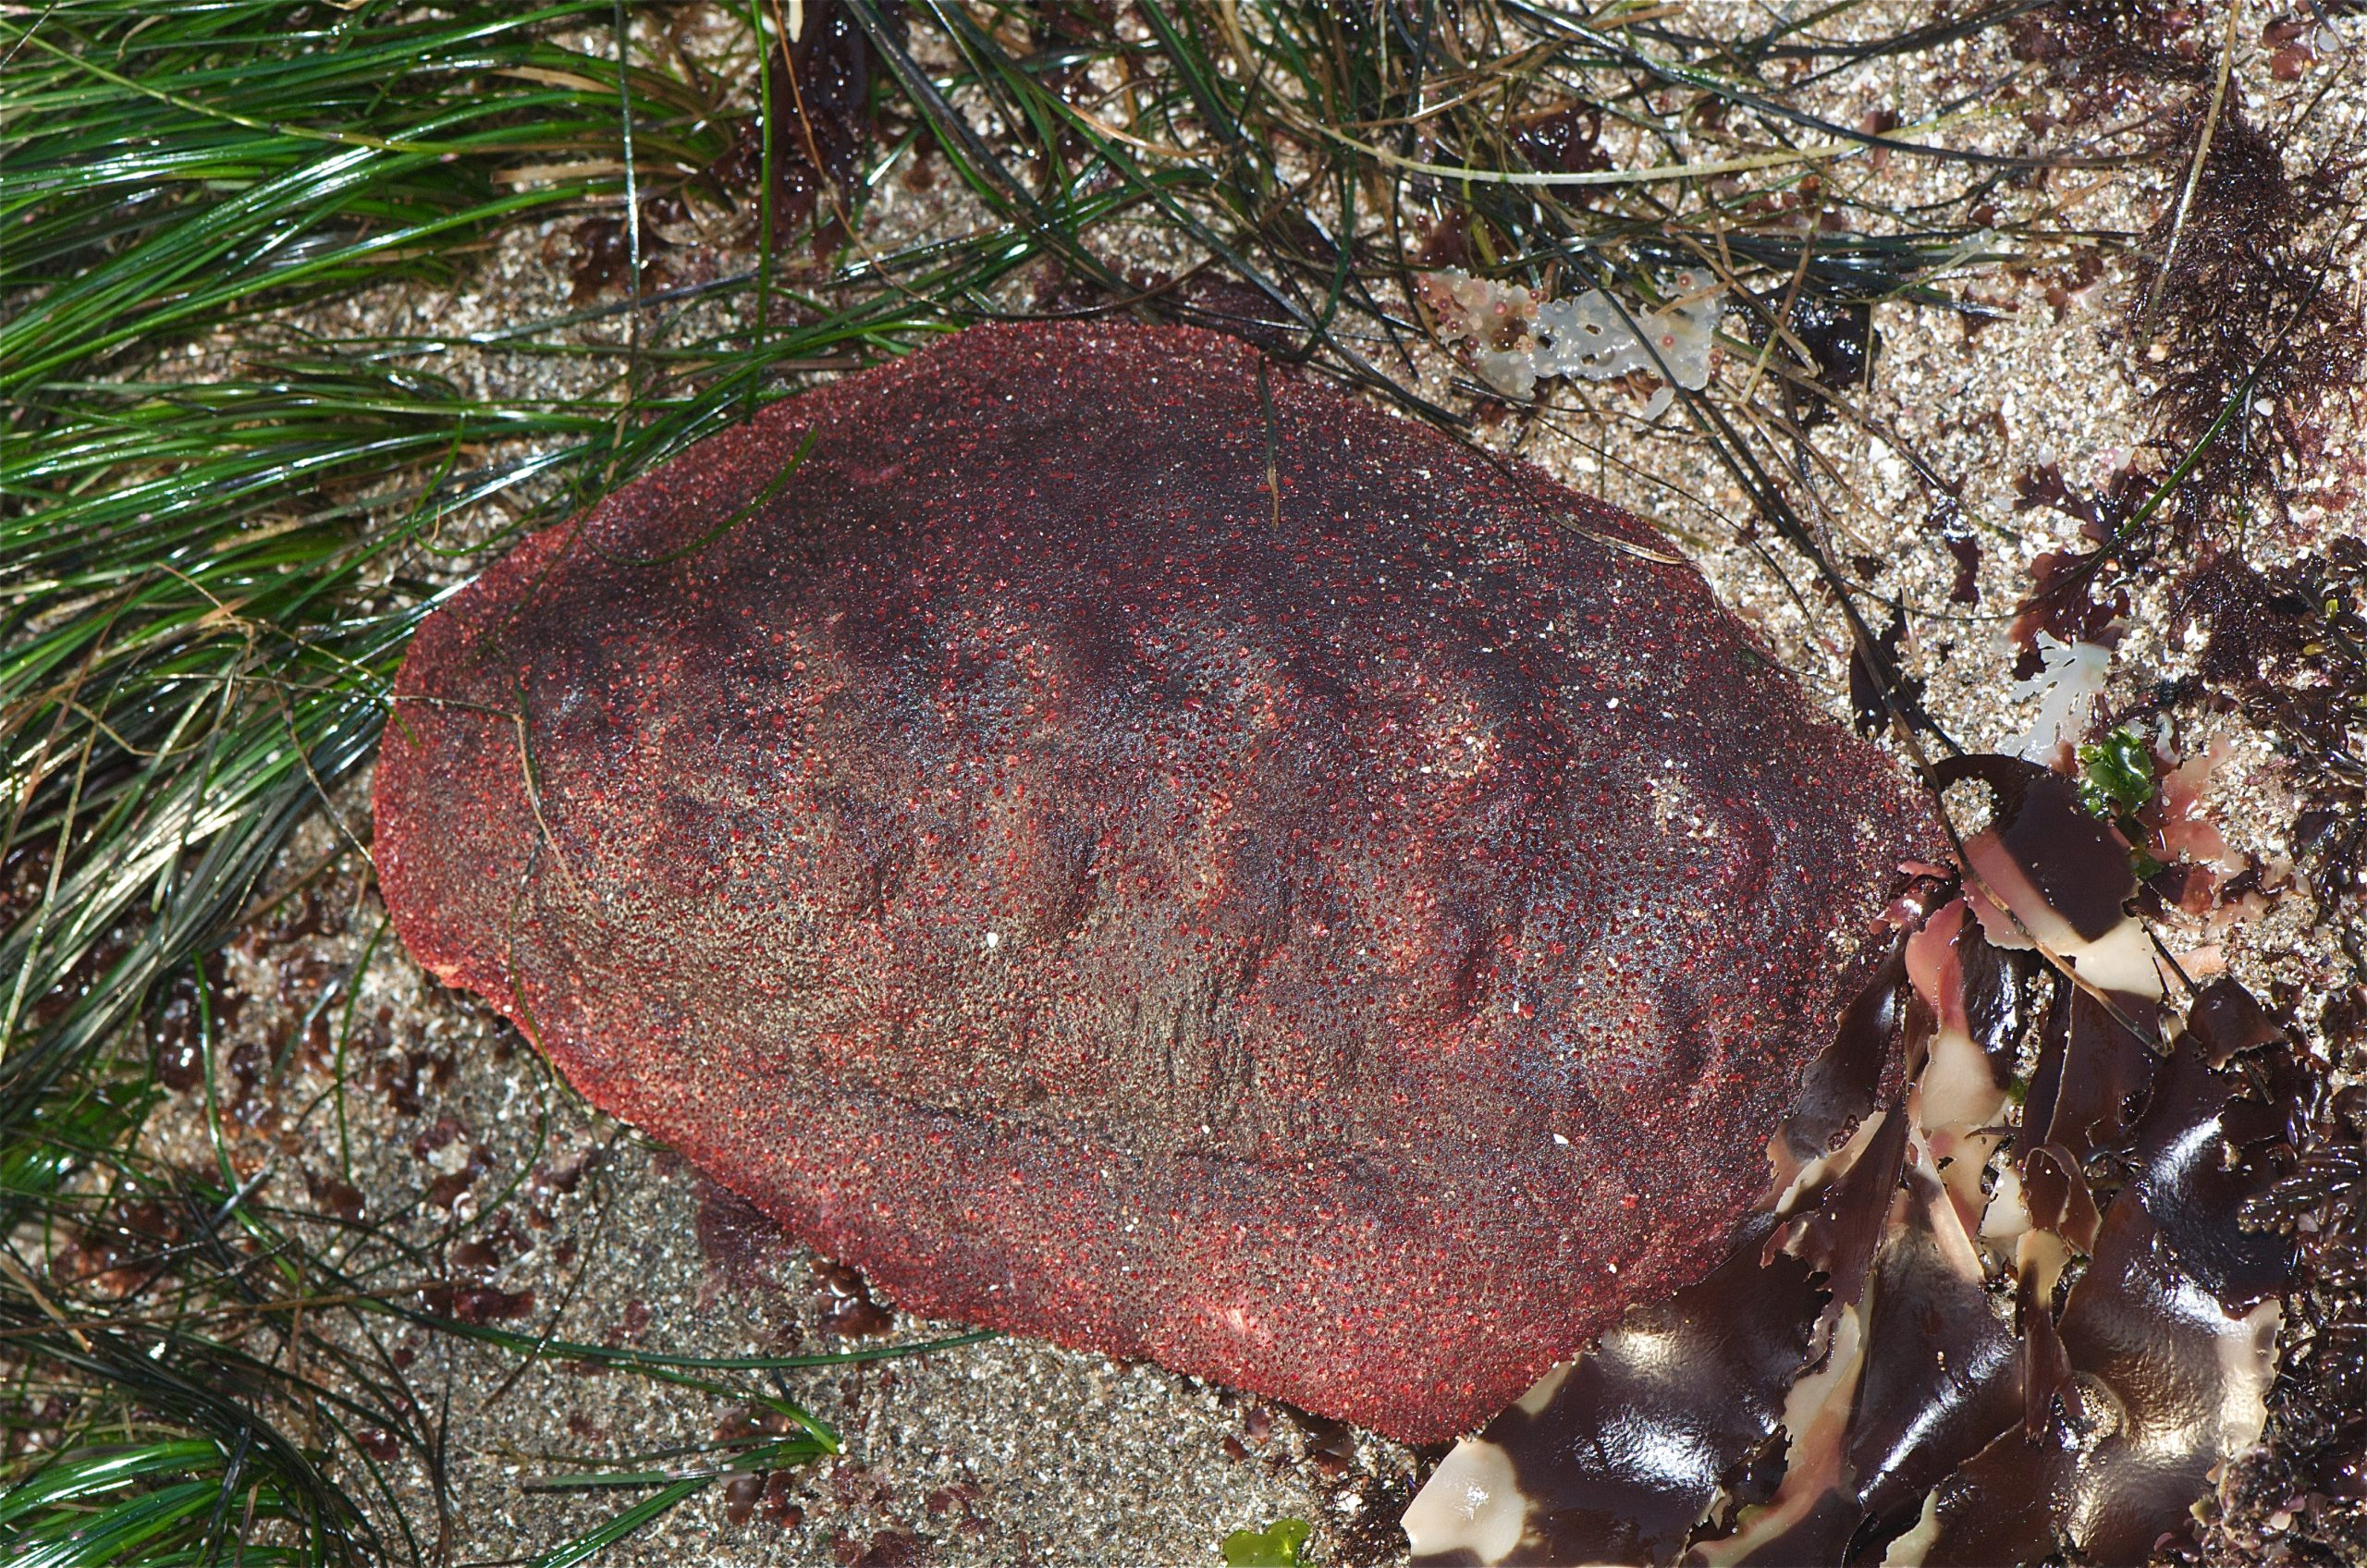 """Cryptochiton stelleri or """"wandering meatloaf"""" mollusk in the wild. Photo via Jerry Kirkhart."""